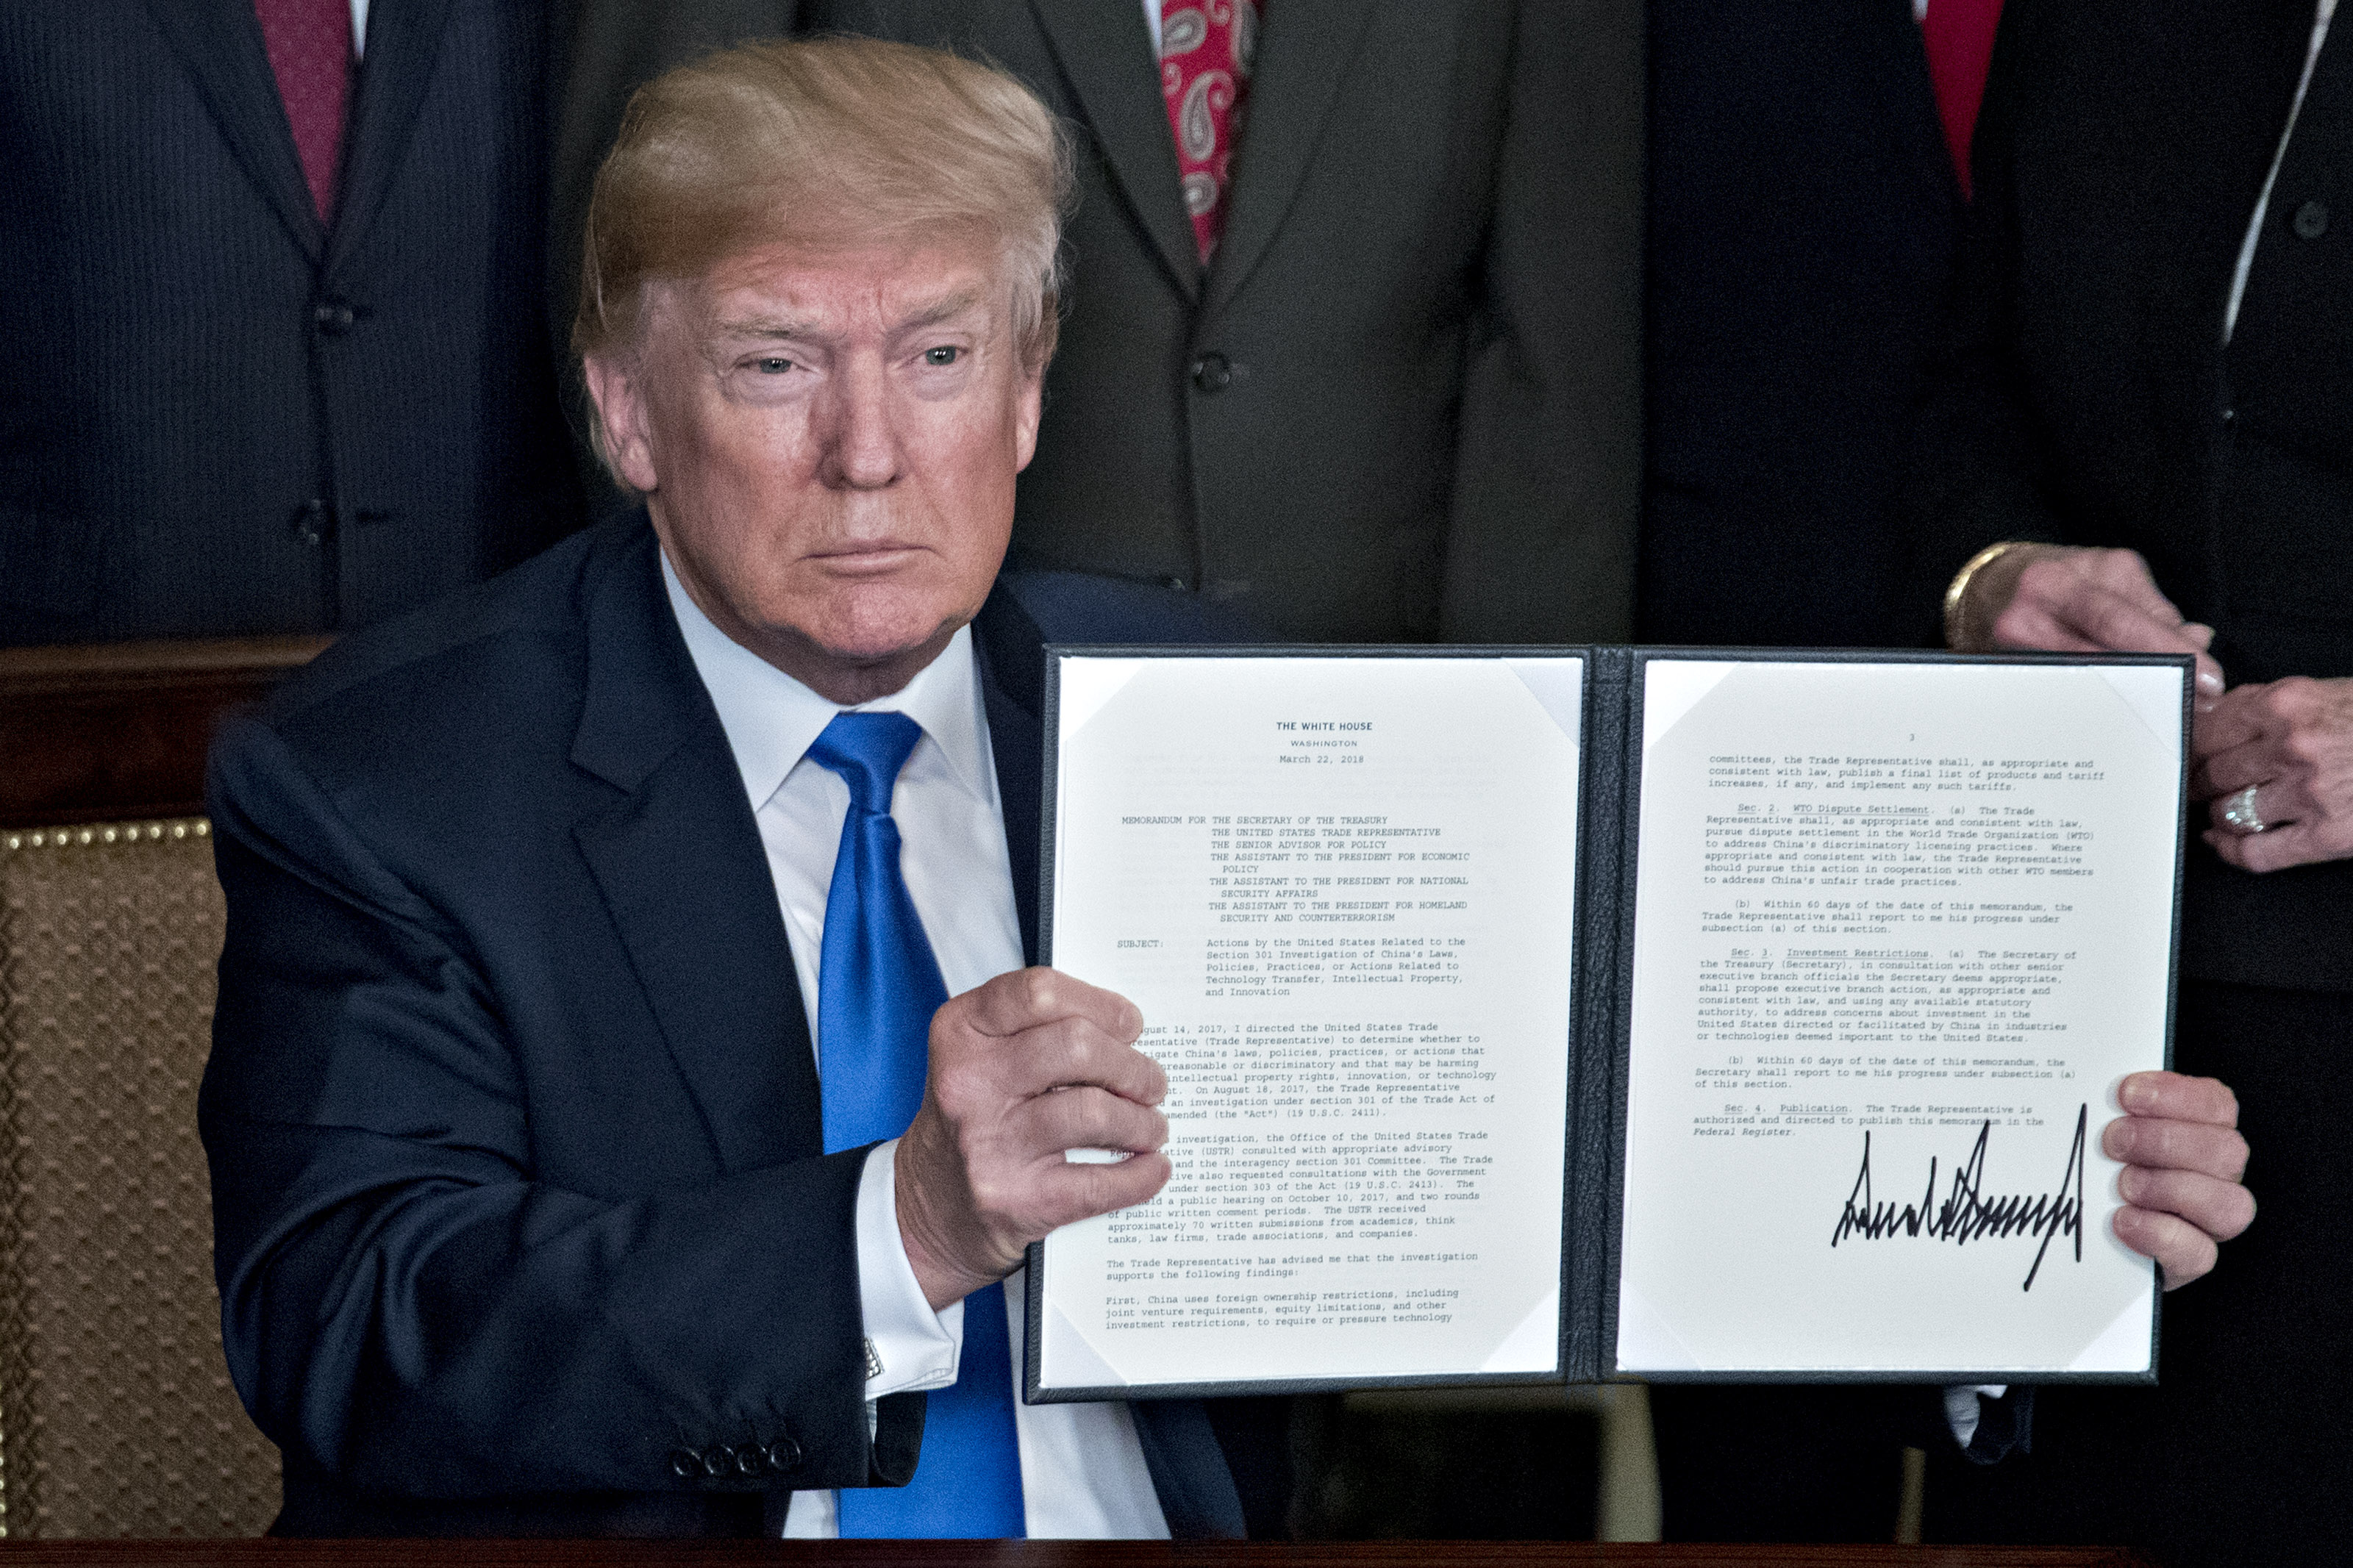 U.S. President Donald Trump holds up a signed presidential memorandum targeting China's economic aggression in the Diplomatic Room of the White House in Washington, D.C., U.S., on Thursday, March 22, 2018. Trump announced about $50 billion of tariffs against China over intellectual-property violations opening a new front in an escalating global trade skirmish that is shaking financial markets.